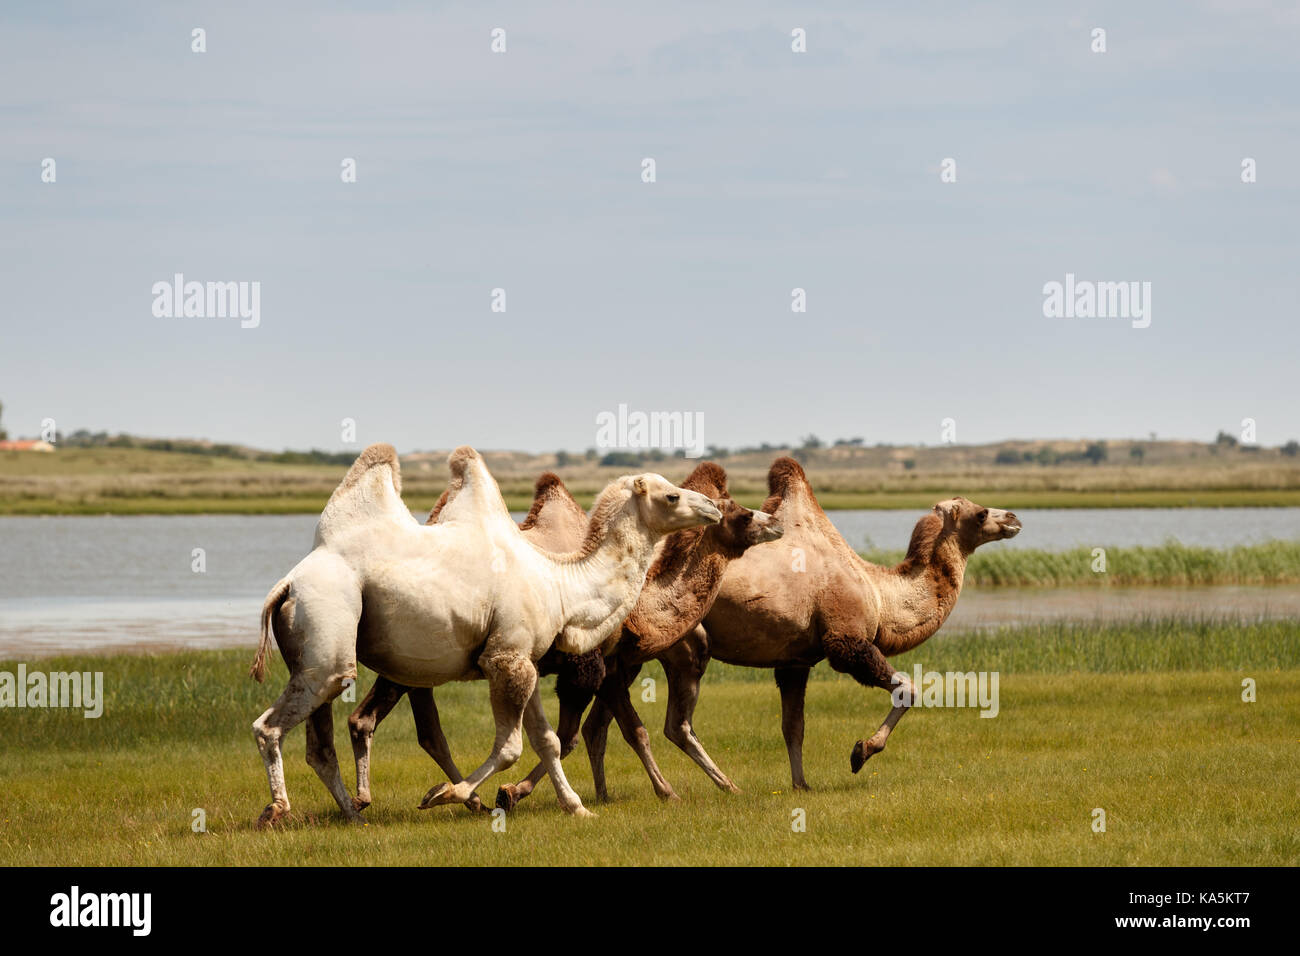 Double hump camels (Bactrian Camels) in grassland of Mongolia are in danger.They considered as endangered species. - Stock Image